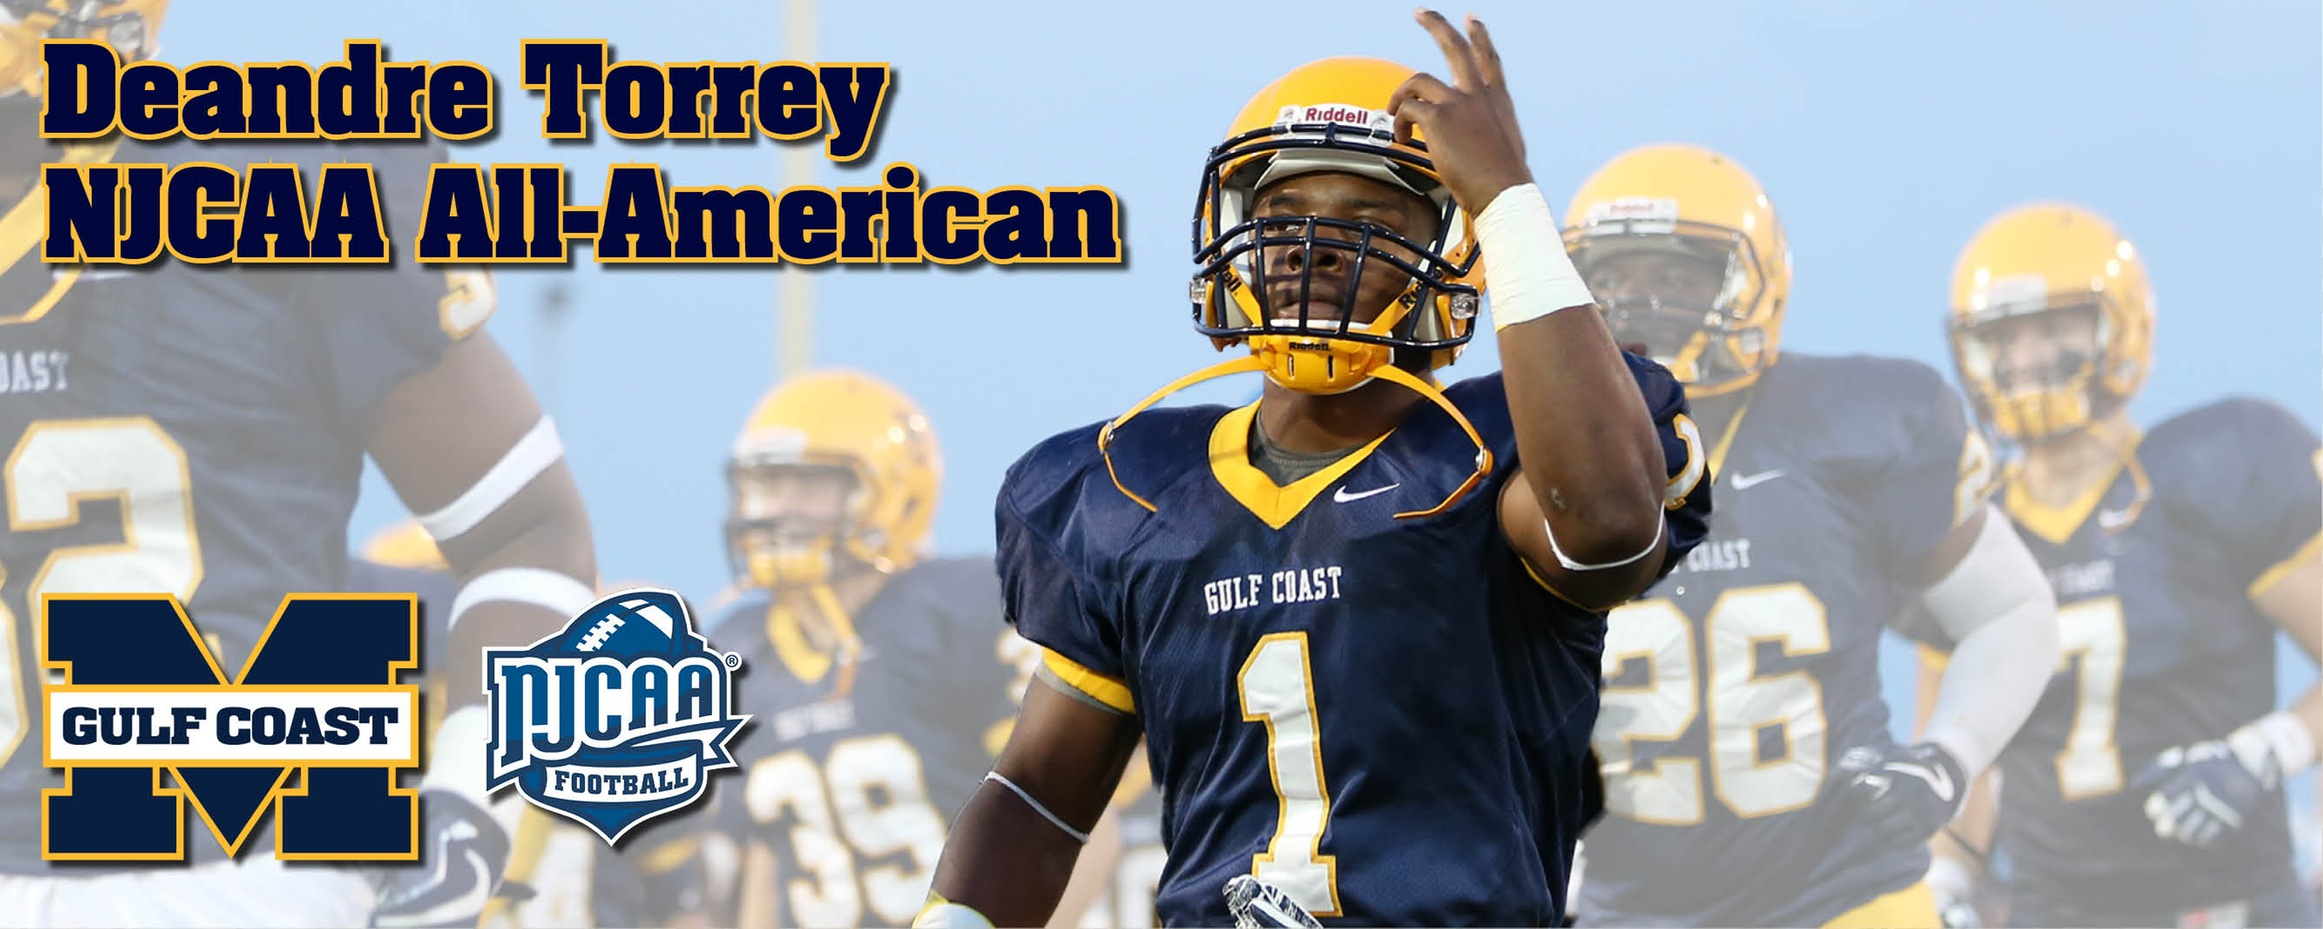 Torrey named All-American